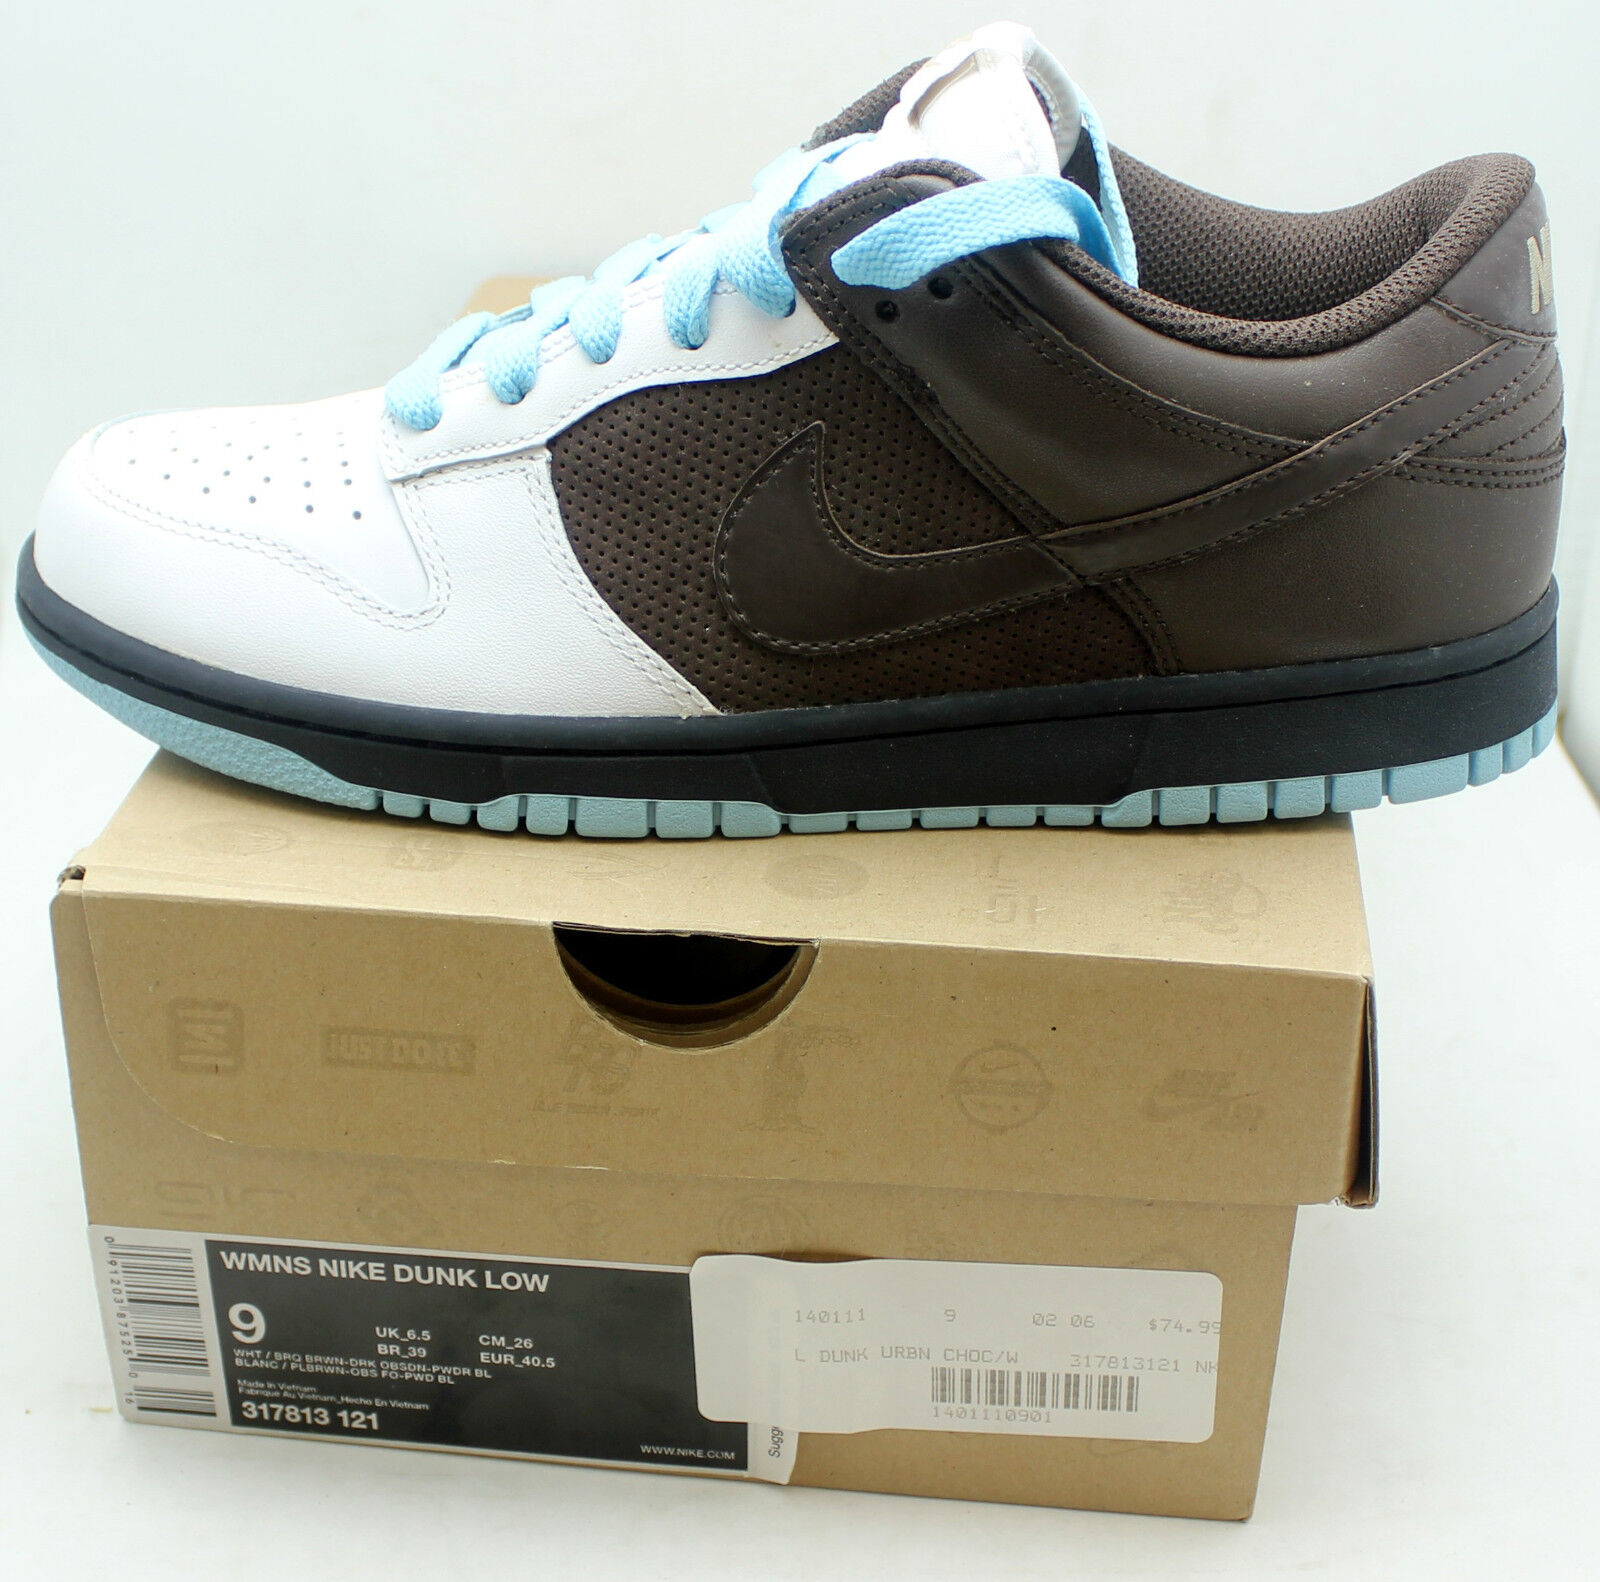 NIB Nike Women's Dunk Low 317813 121 Chocolate Brown/Powder Blue Dead Stock New shoes for men and women, limited time discount